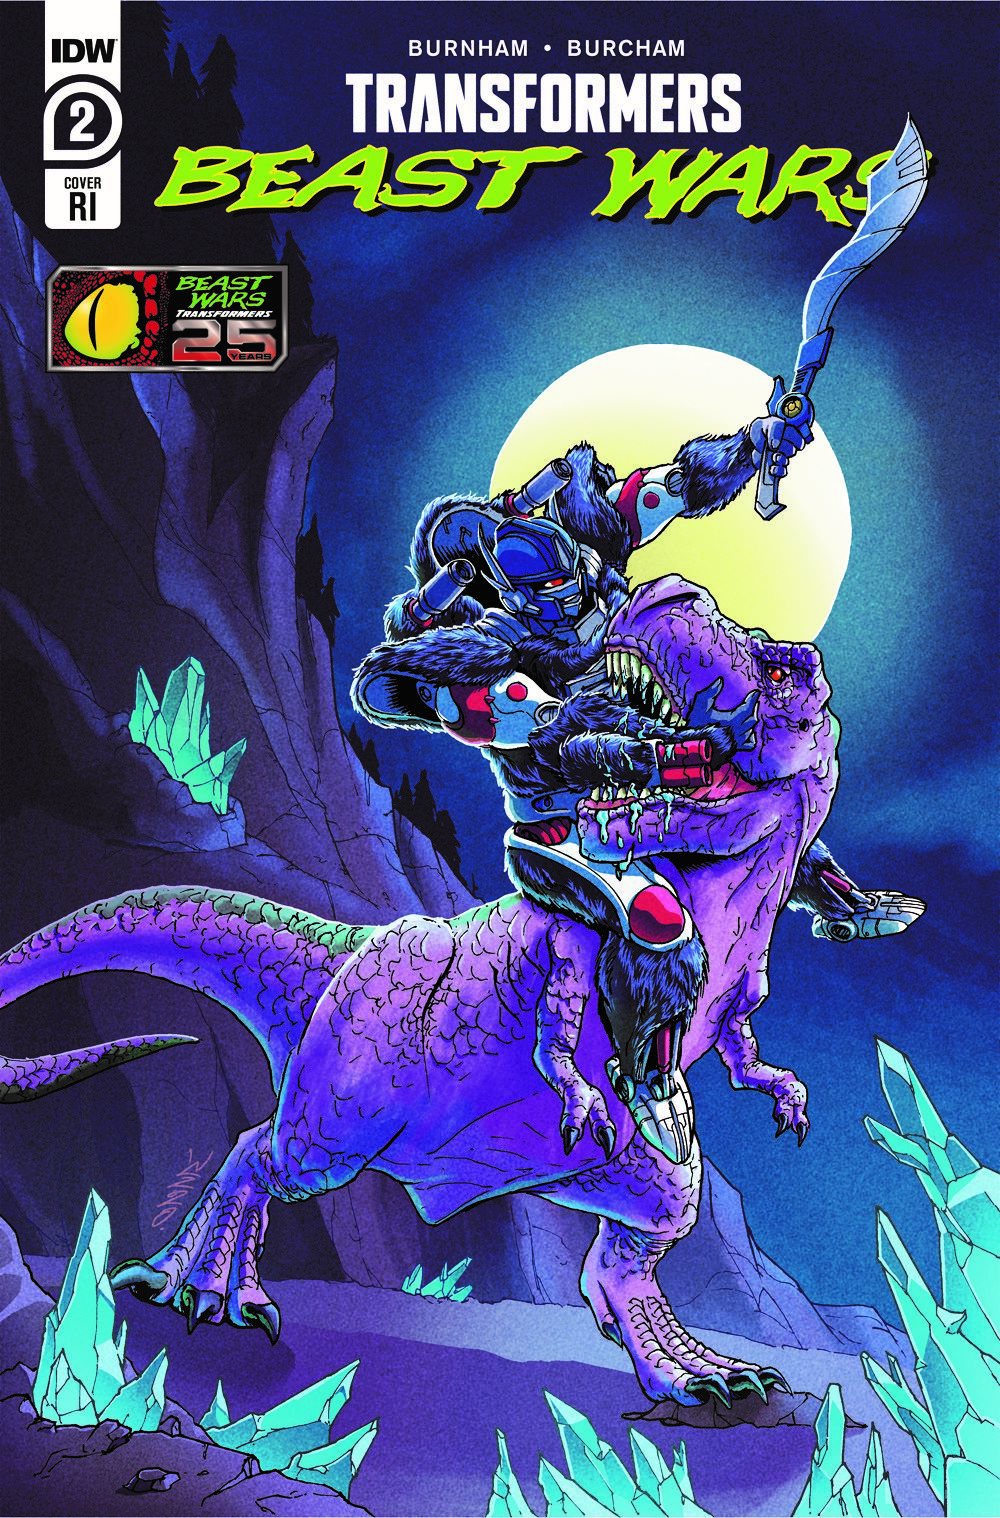 TFBW-Cover-RI ComicList: IDW Publishing New Releases for 03/03/2021